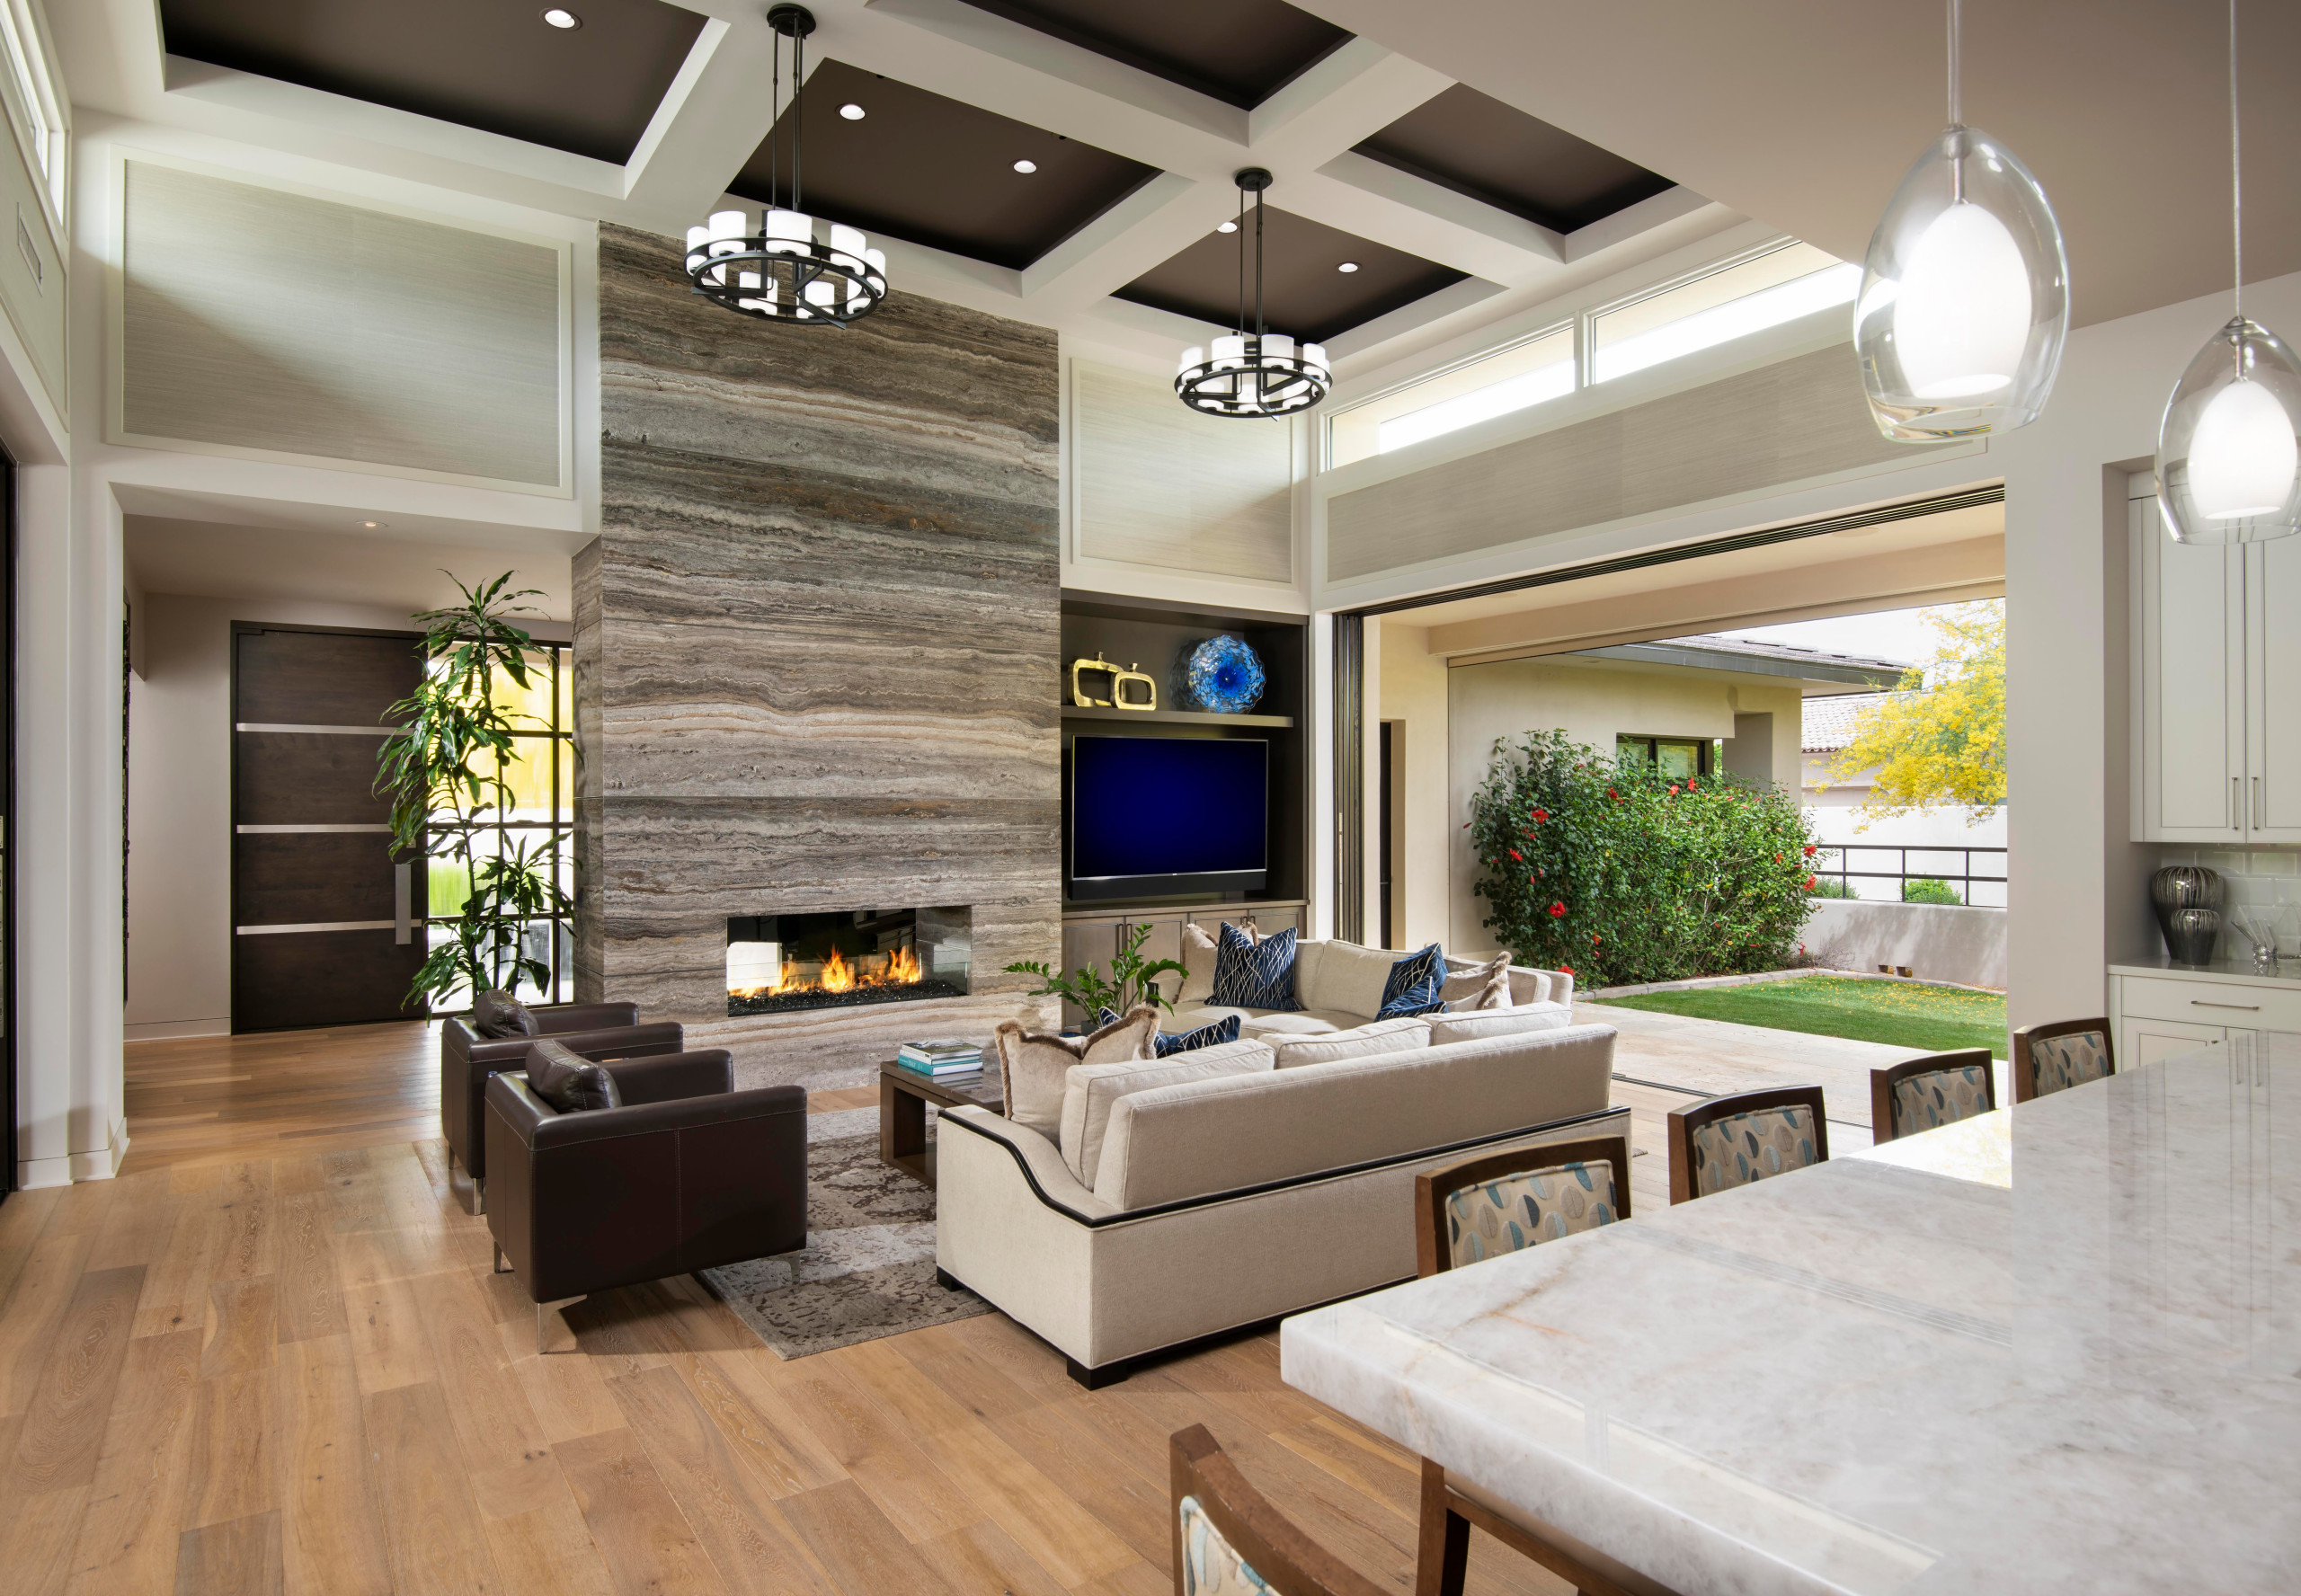 75 Beautiful Living Room Pictures Ideas October 2020 Houzz